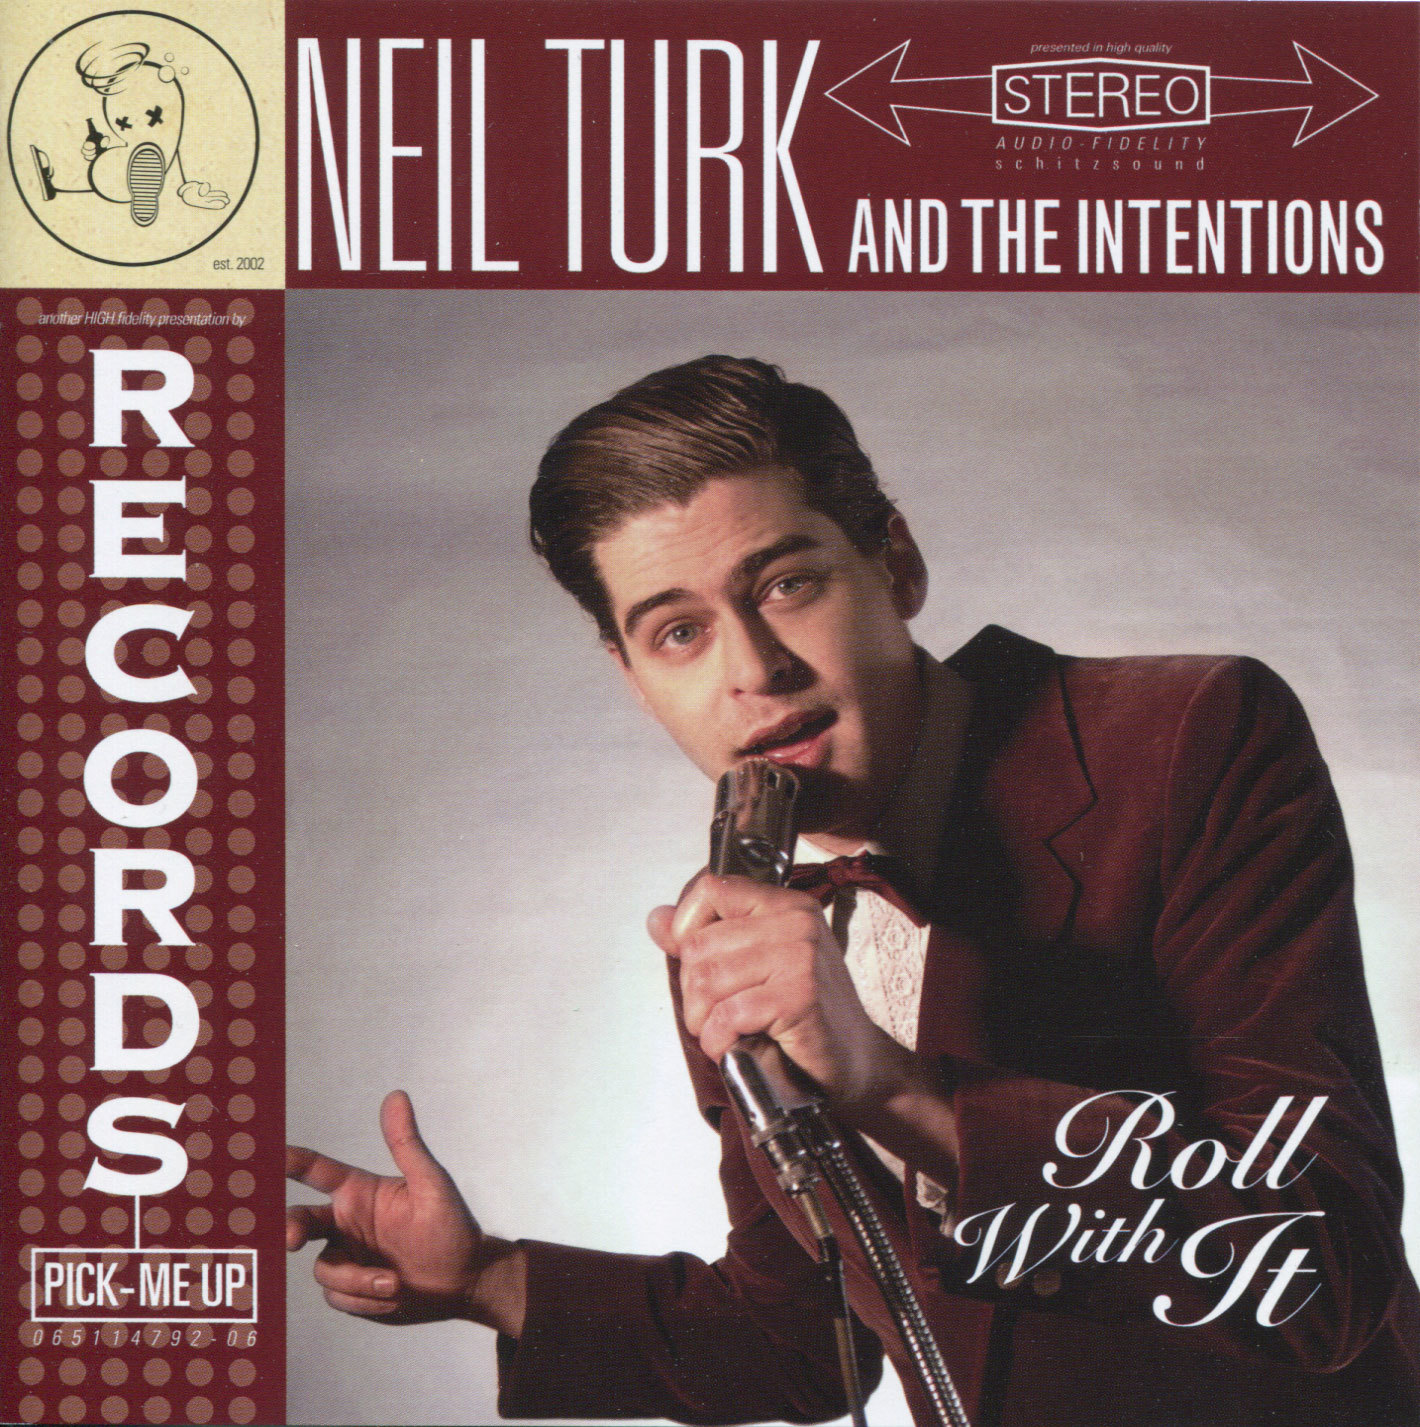 Neil Turk & The Intentions    Roll With It    An eclectic mix of songs spanning the rock genre from an ensemble set of musicians fronted by ex-Atomix crooner, Neil Turk.   Buy on iTunes